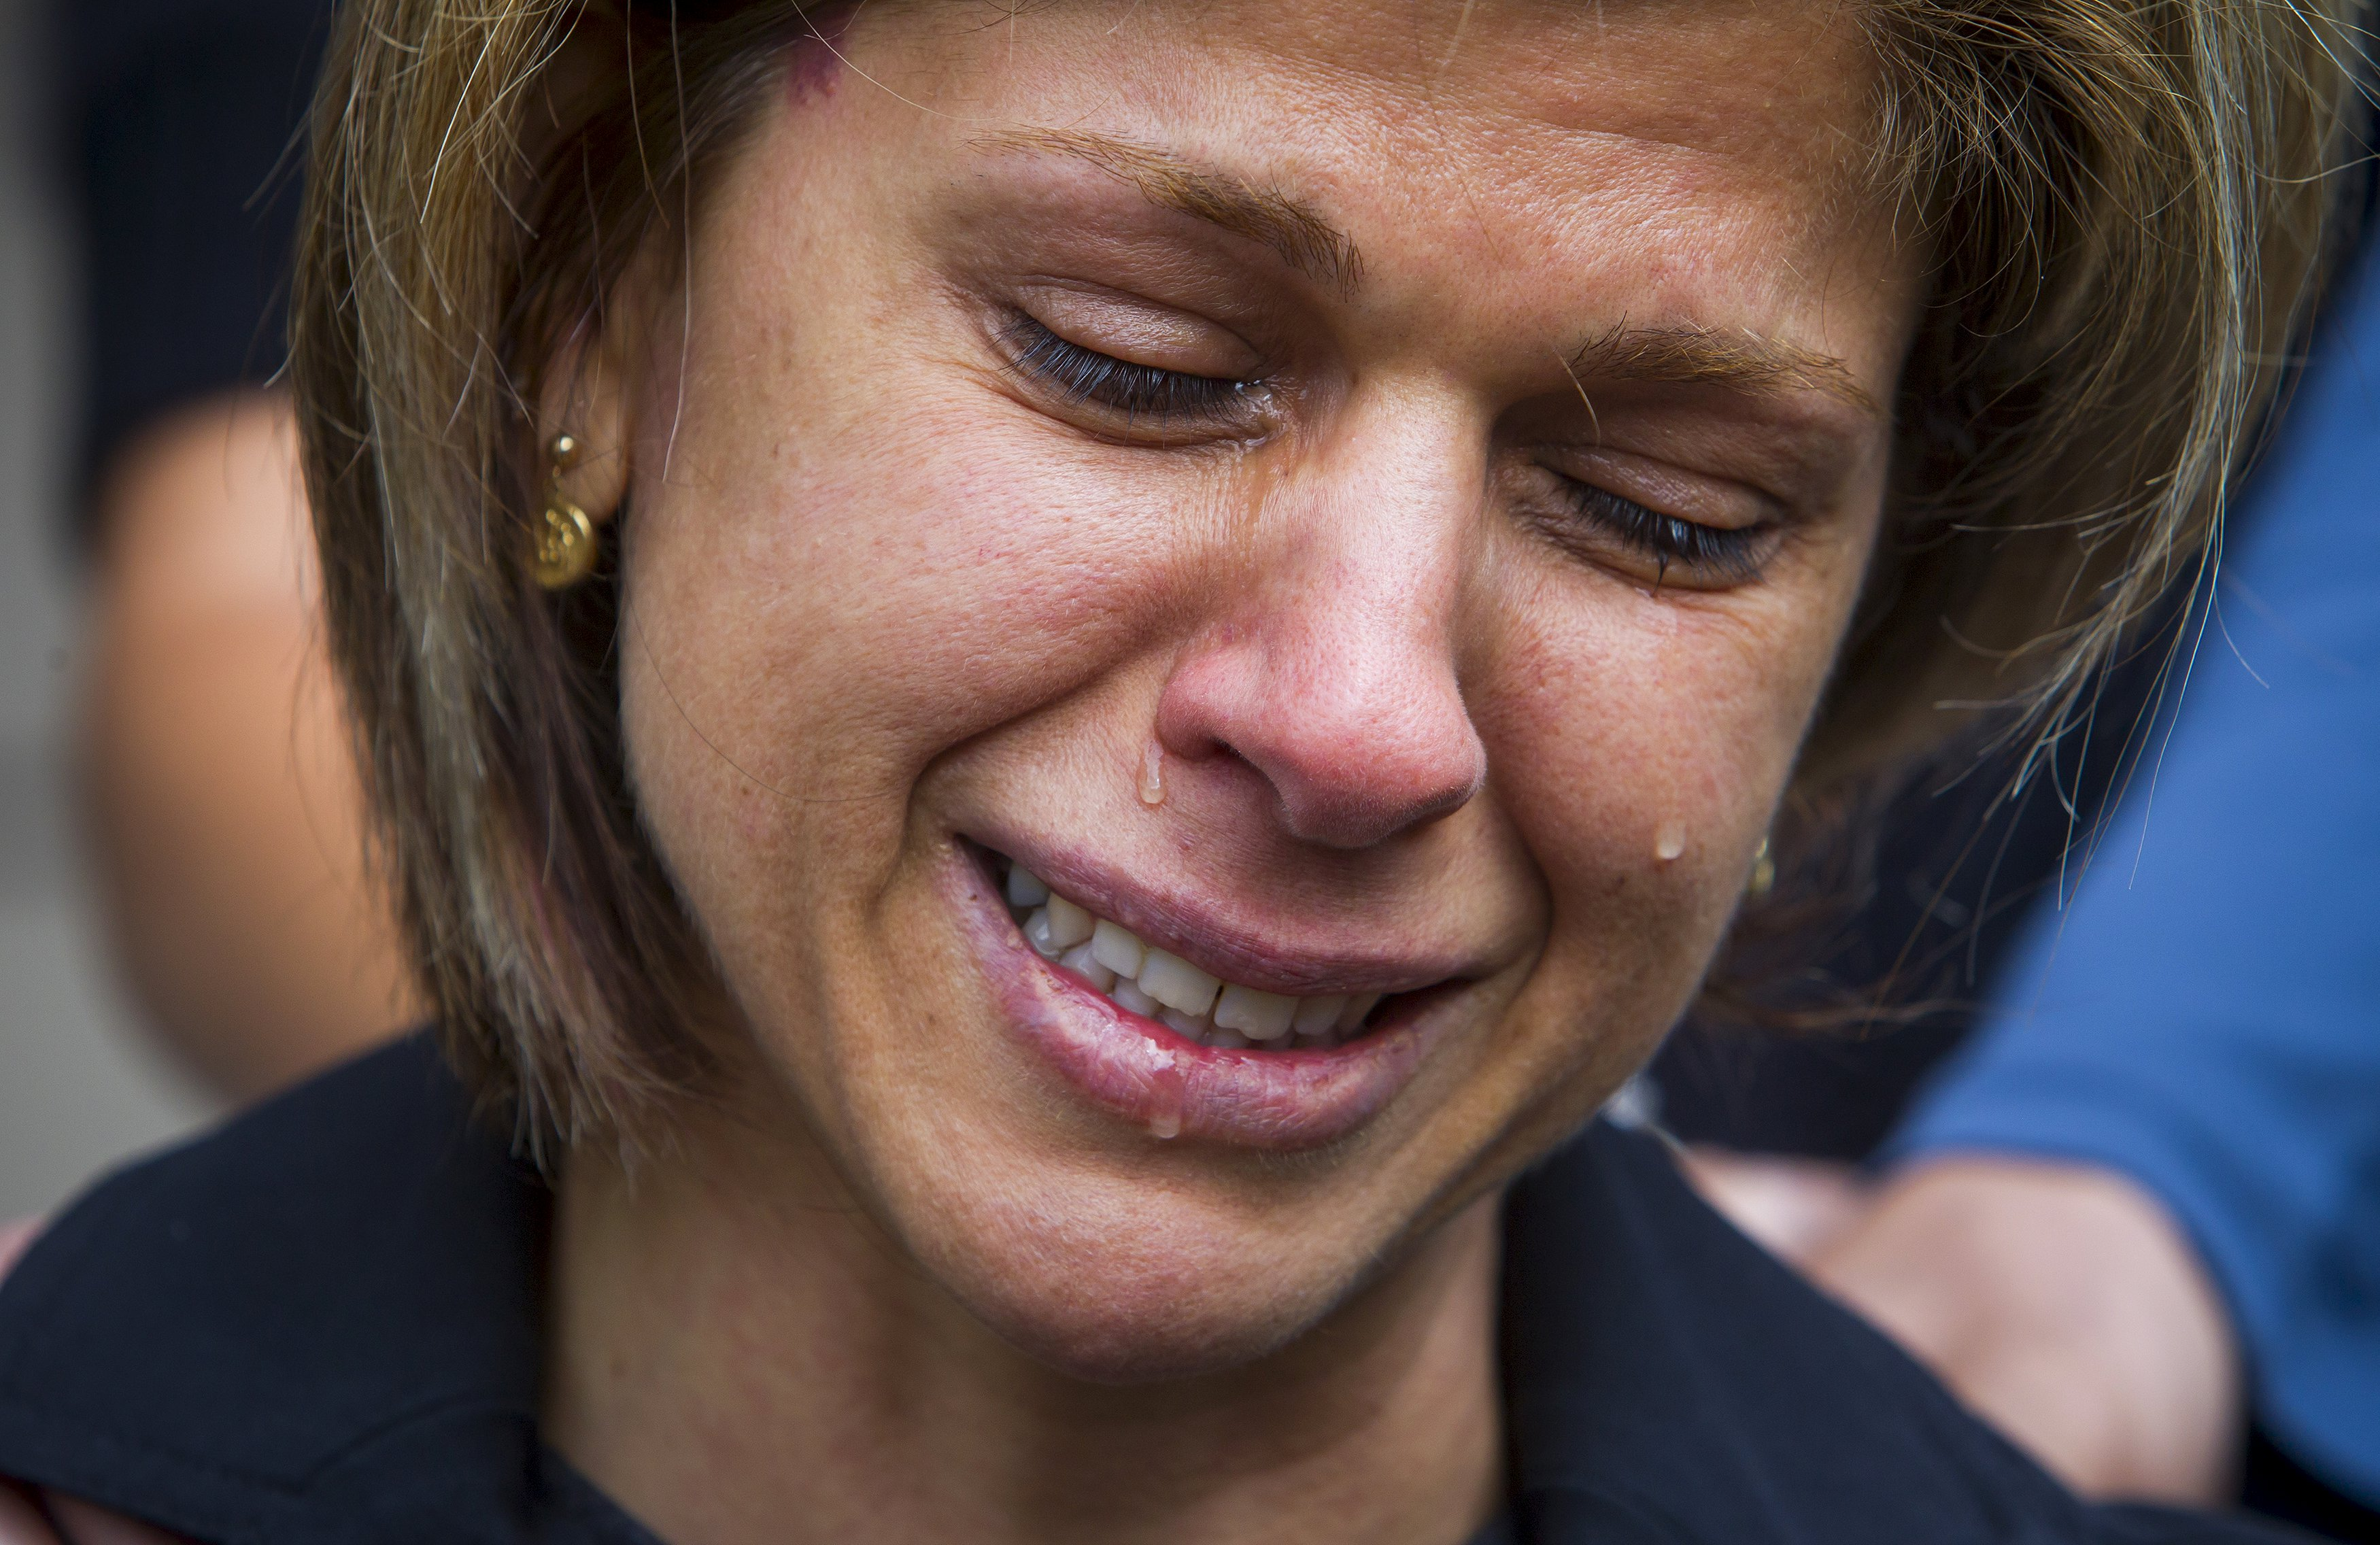 Aylan's aunt makes an emotional appeal to refugees planning to cross Mediterranean to think again.